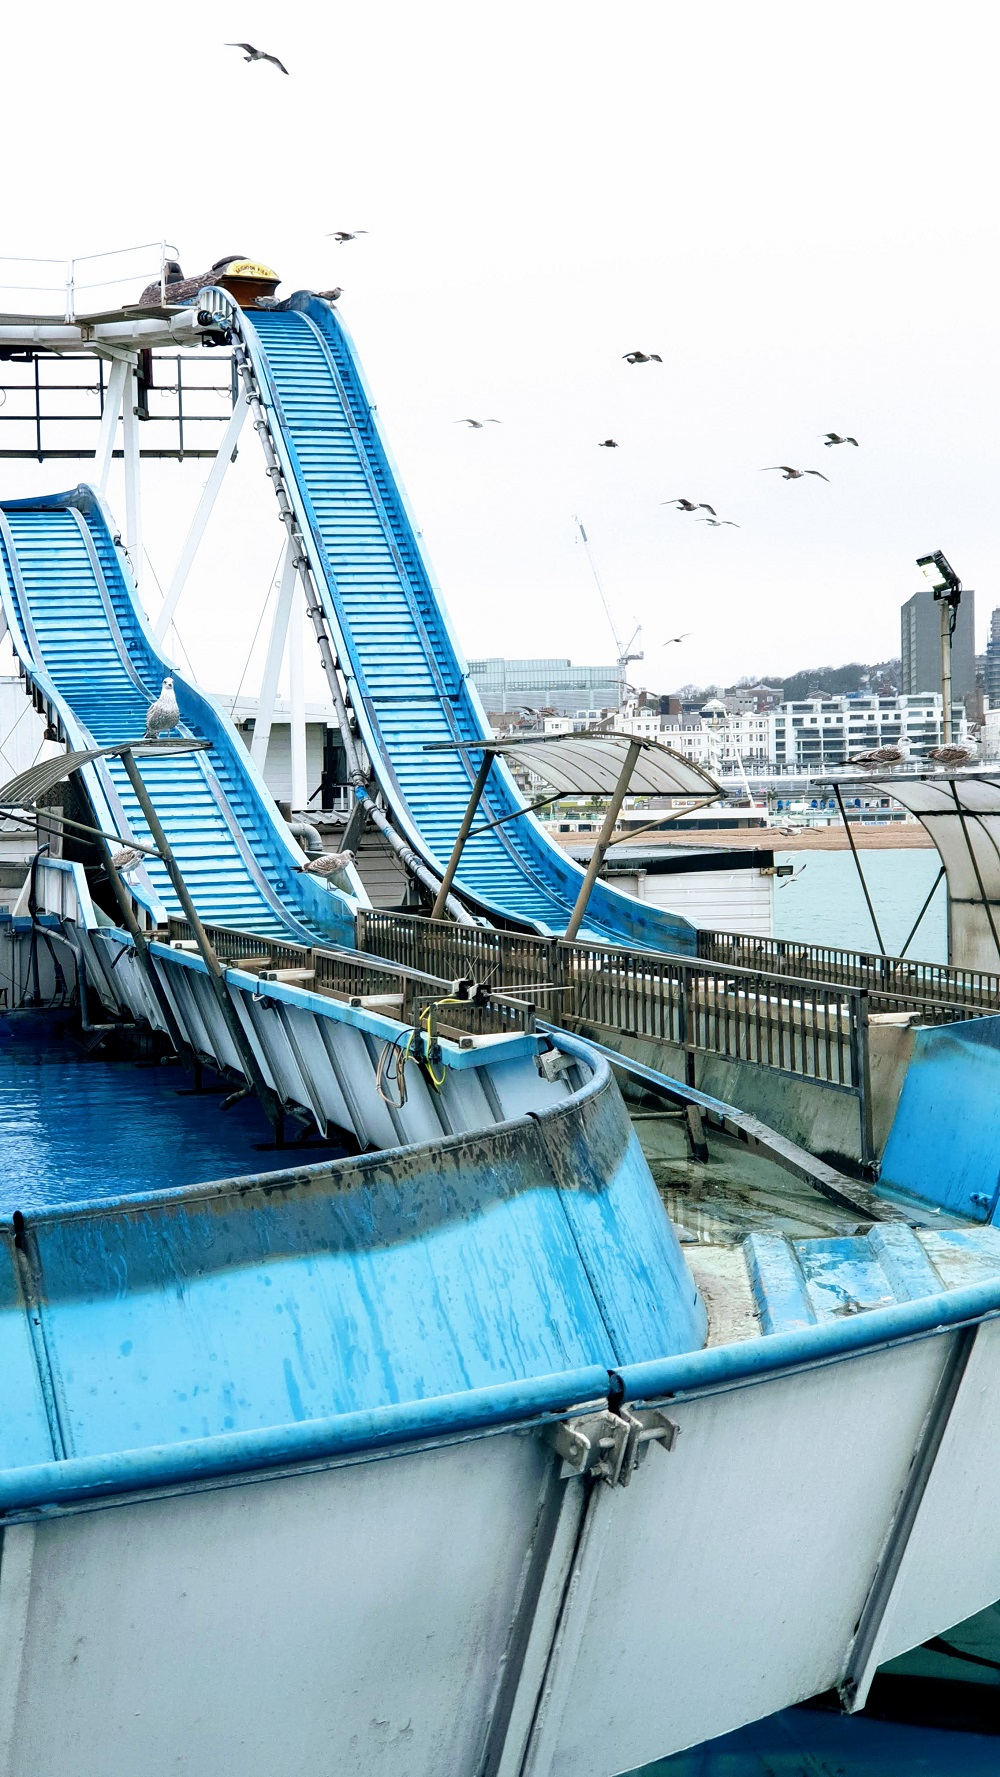 It's A Bit To Windy For The Log Flume Just Yet